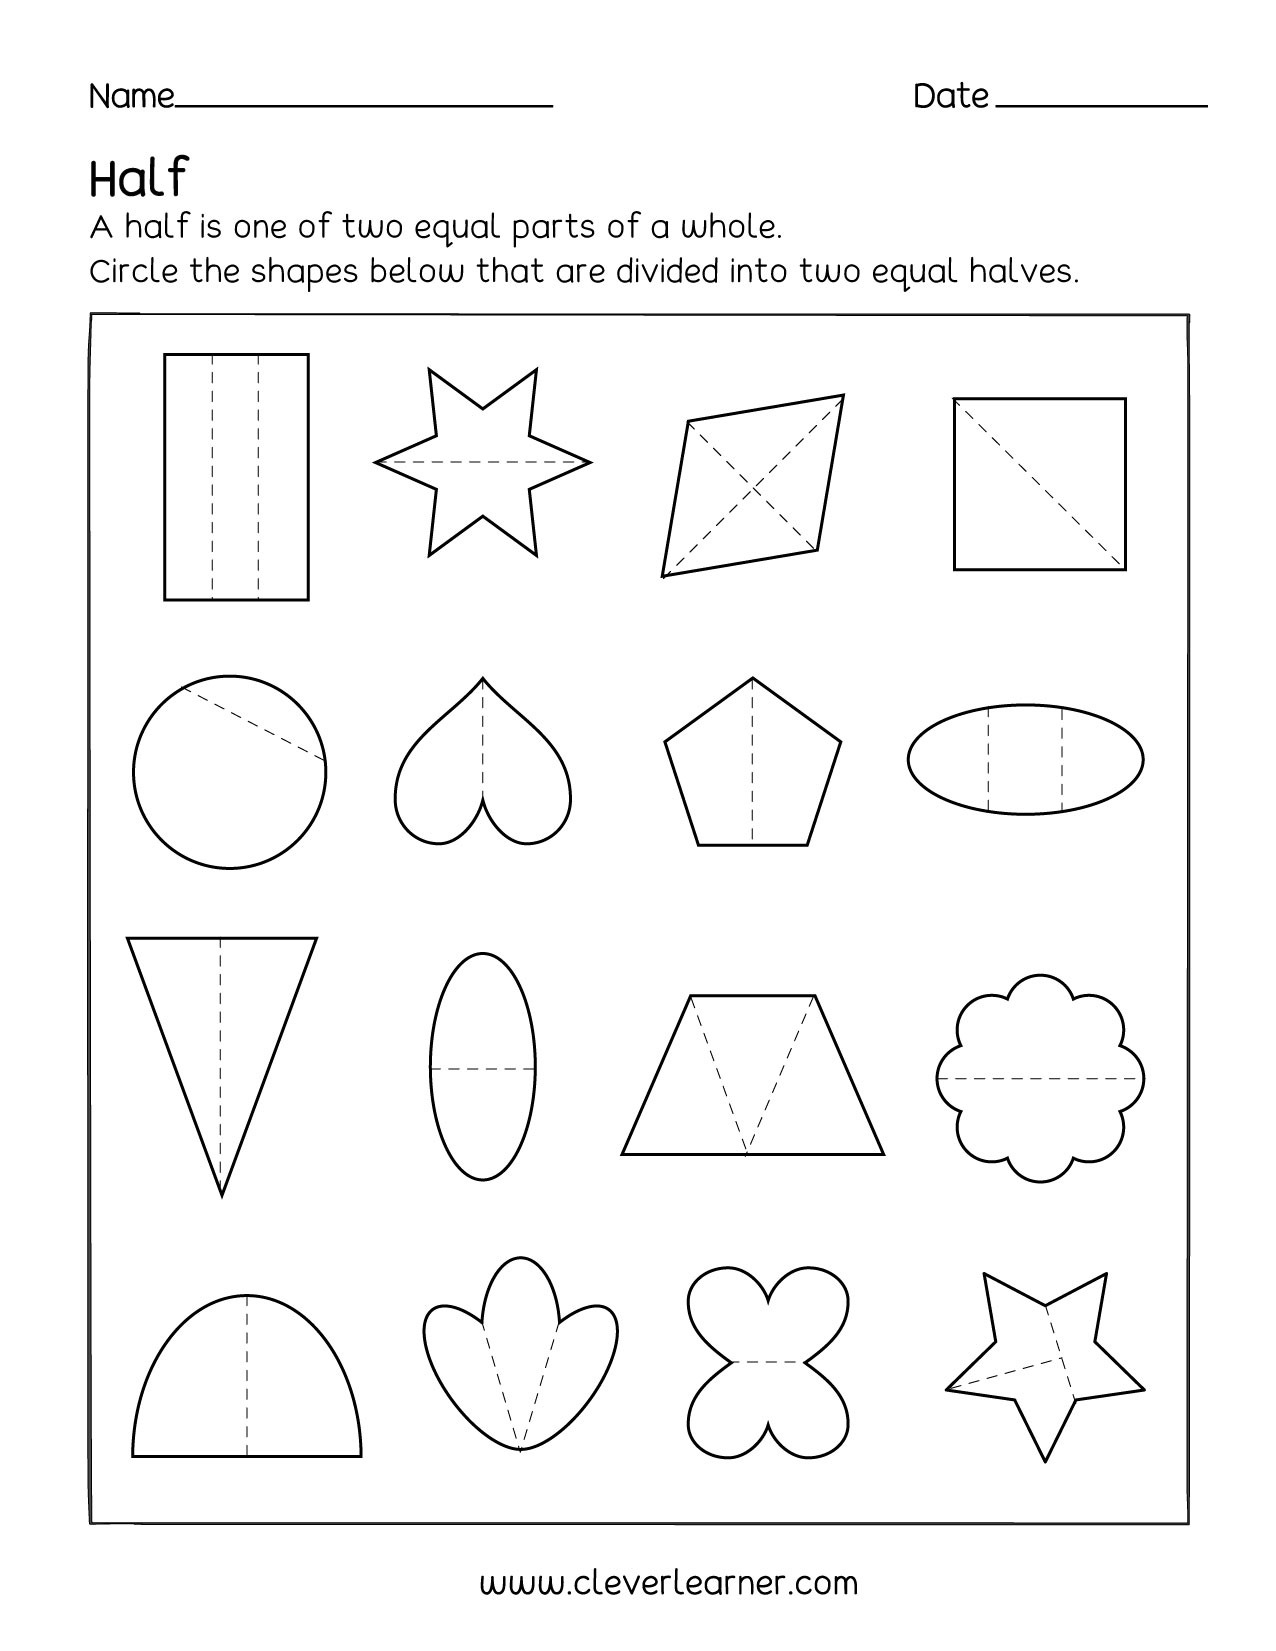 Dividing Shapes Into Equal Parts Worksheet